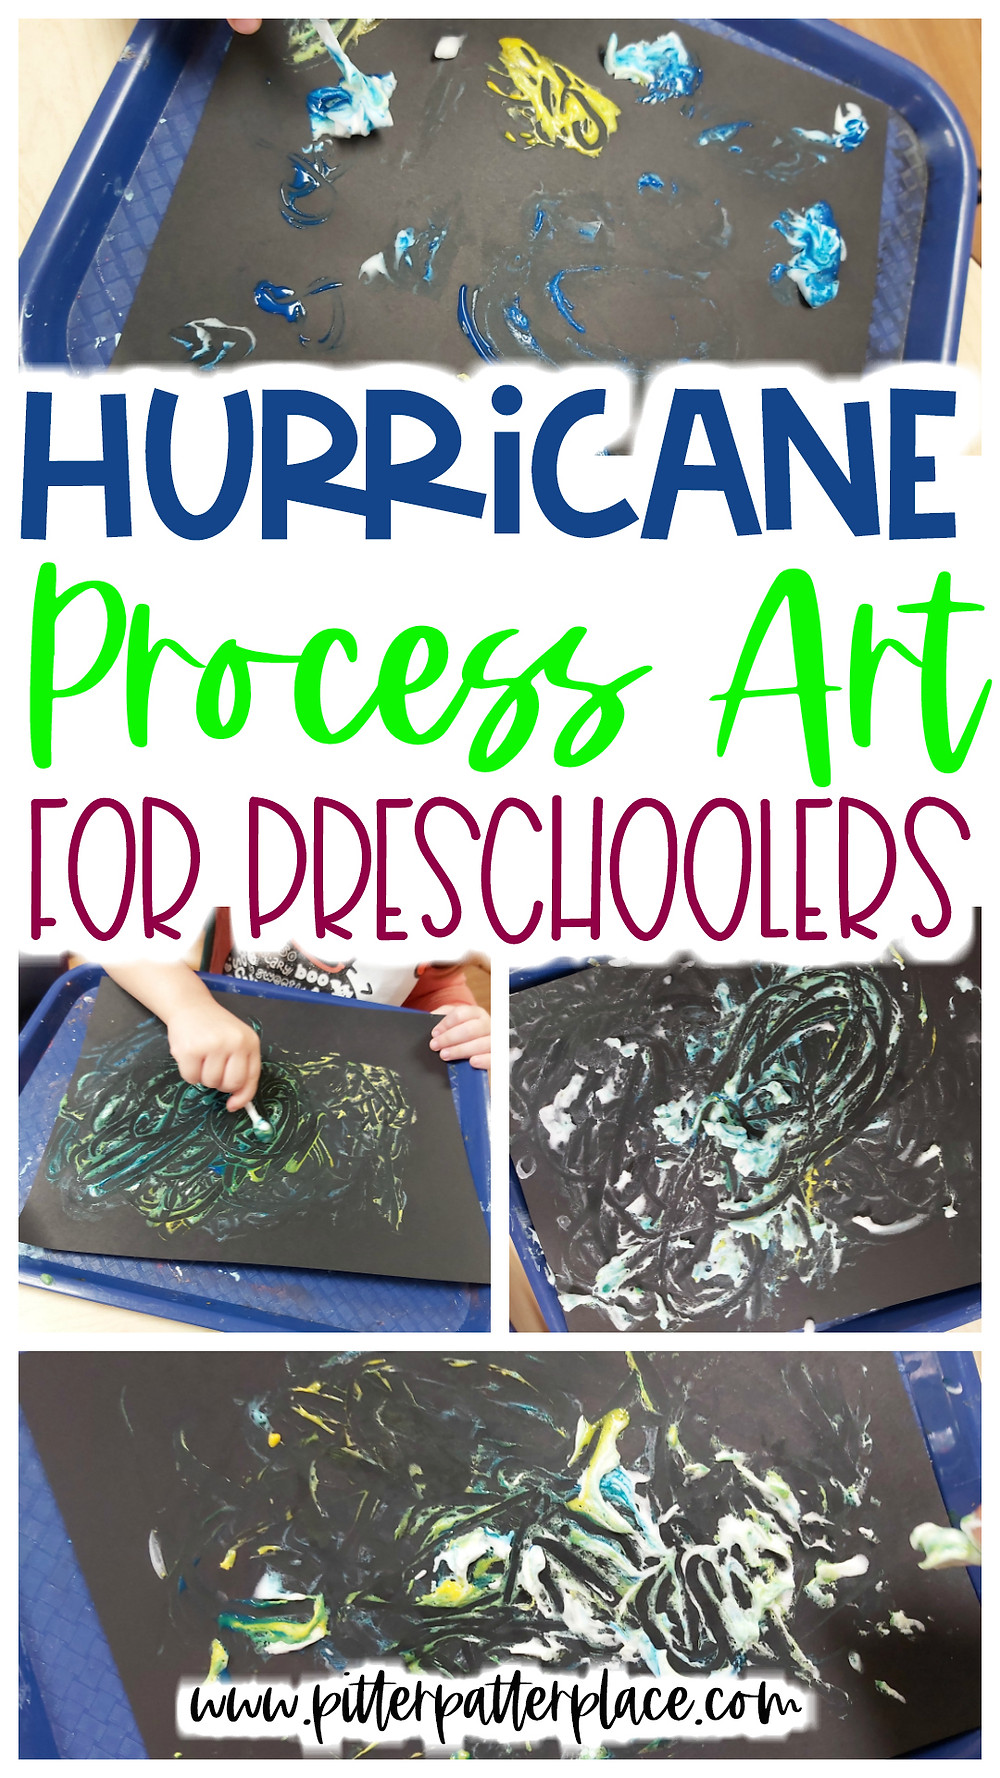 collage of process art images with text: Hurricane Process Art for Preschoolers